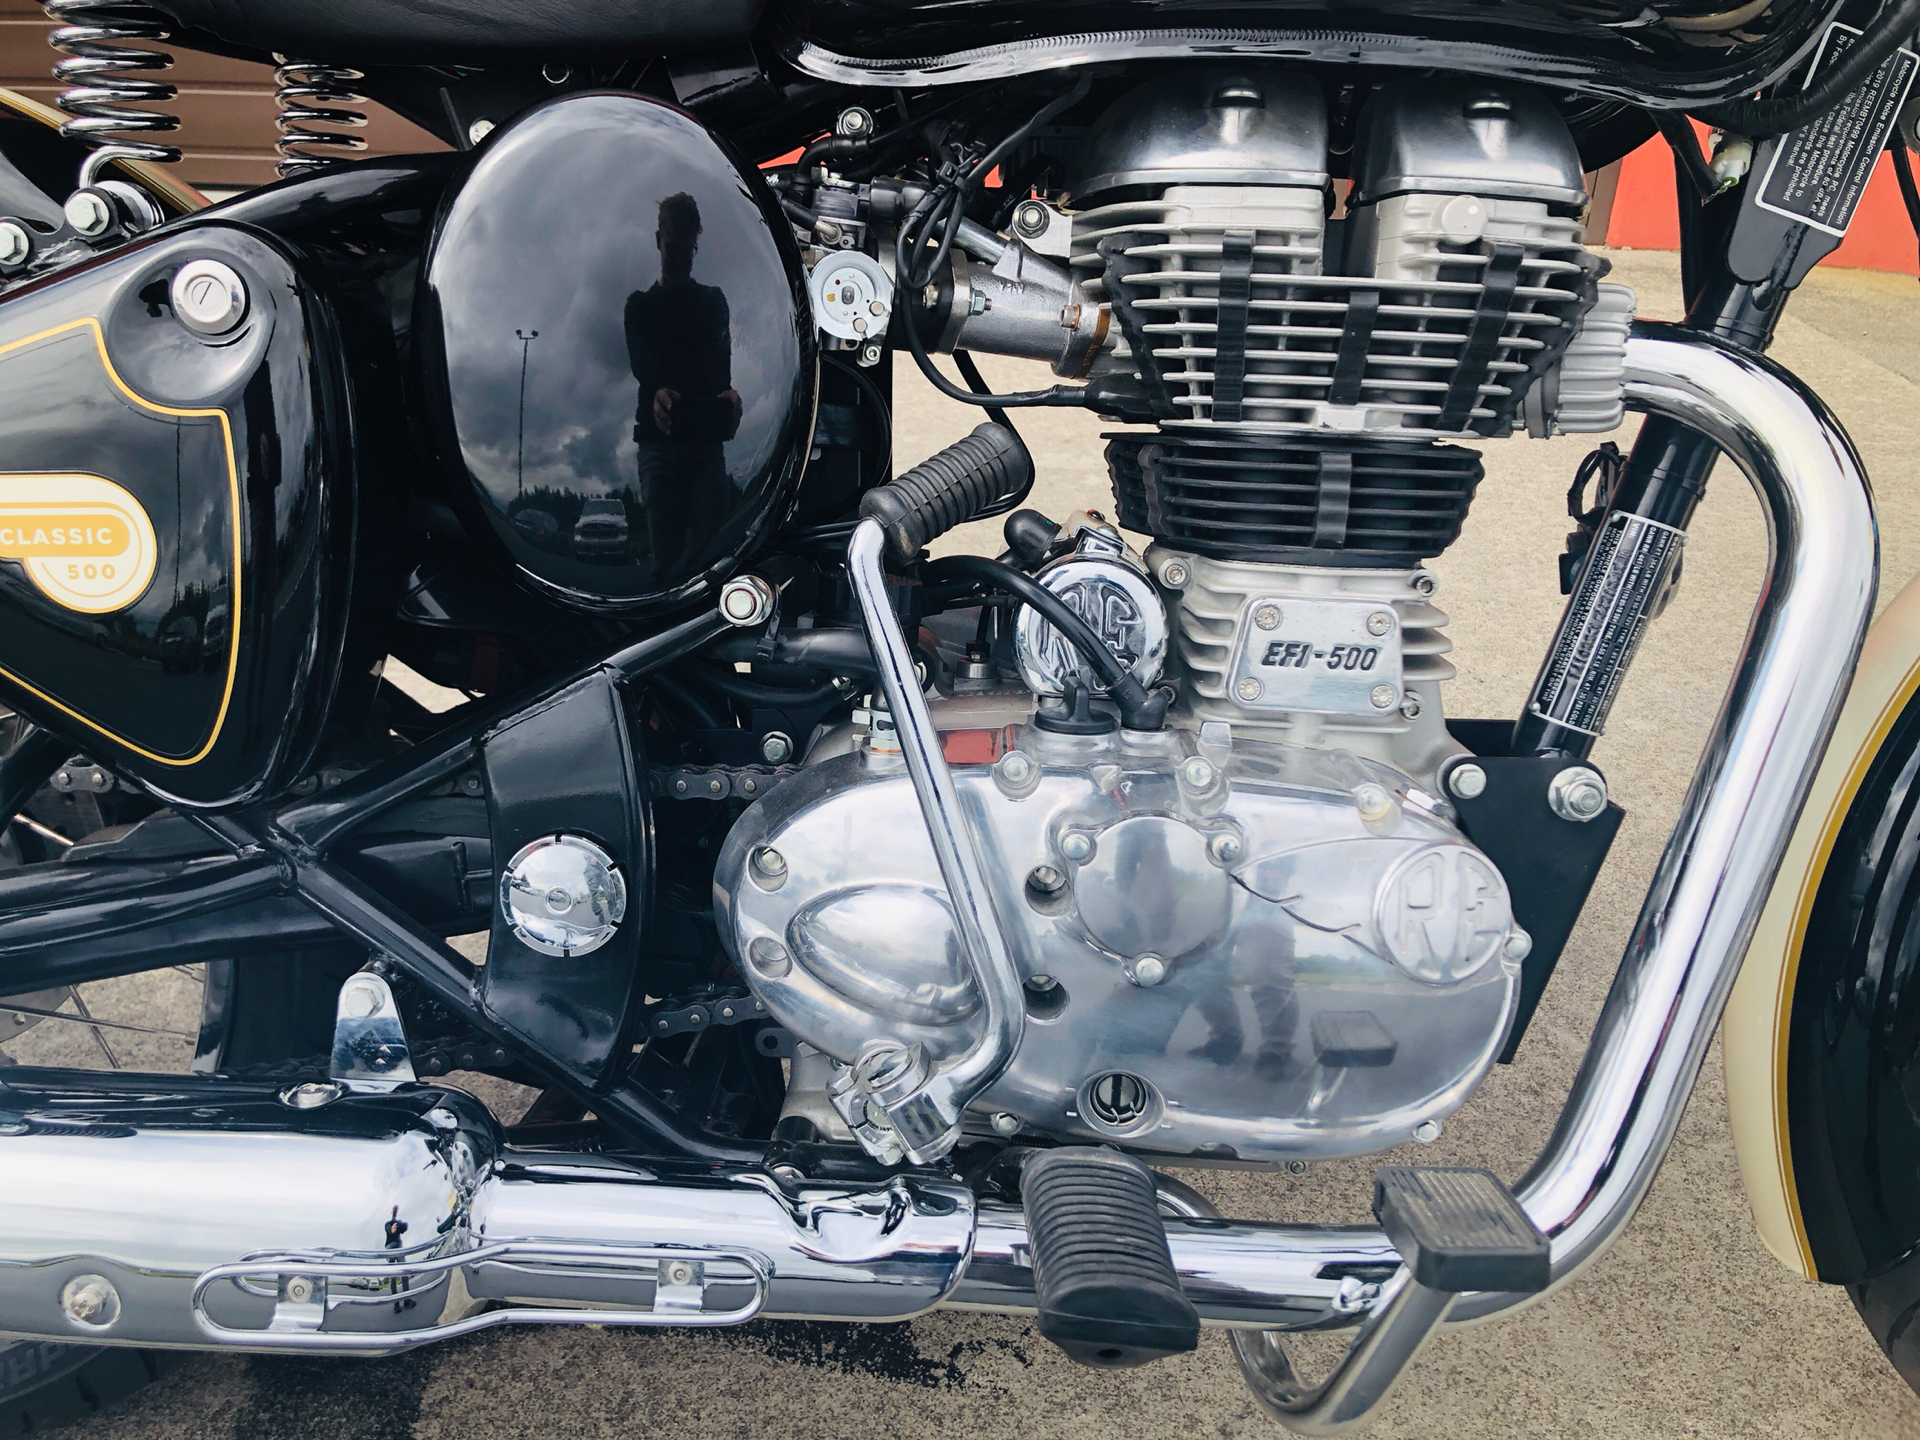 2019 Royal Enfield Classic 500 ABS in Burlington, Washington - Photo 2